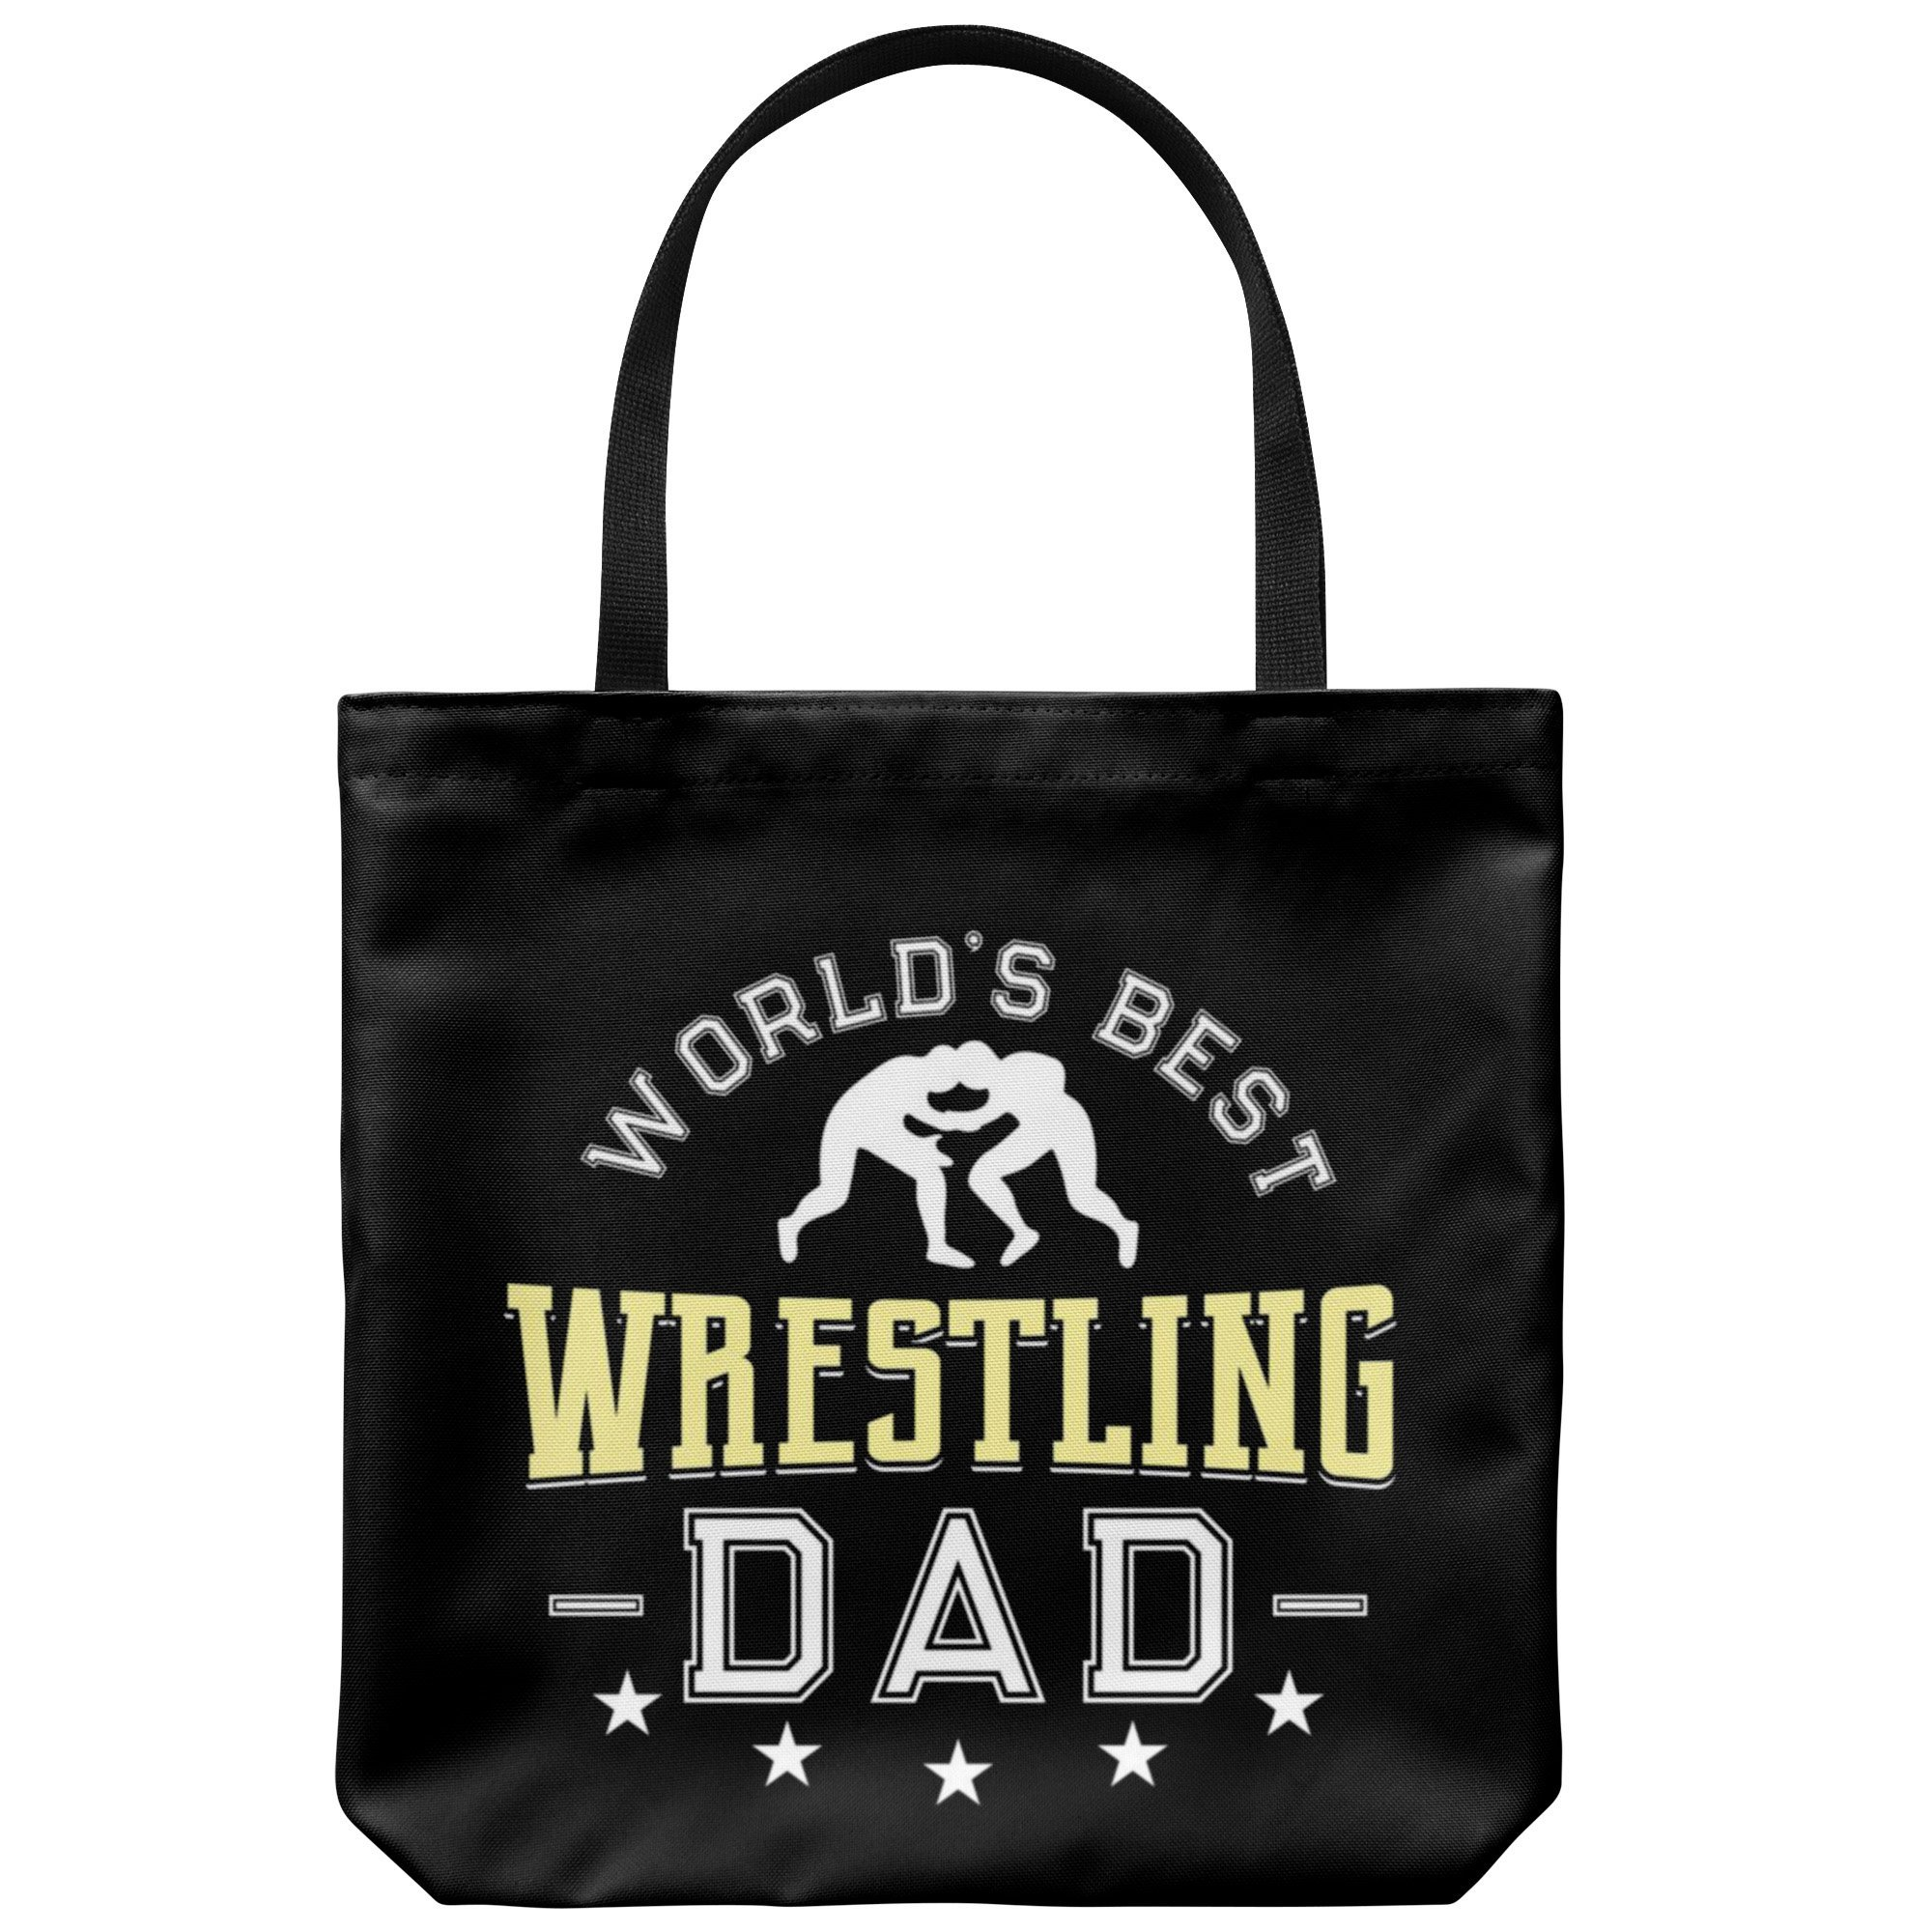 Wrestling Dad Canvas Tote Bag Funny Father's Day Wrestler World's Best by teelaunch